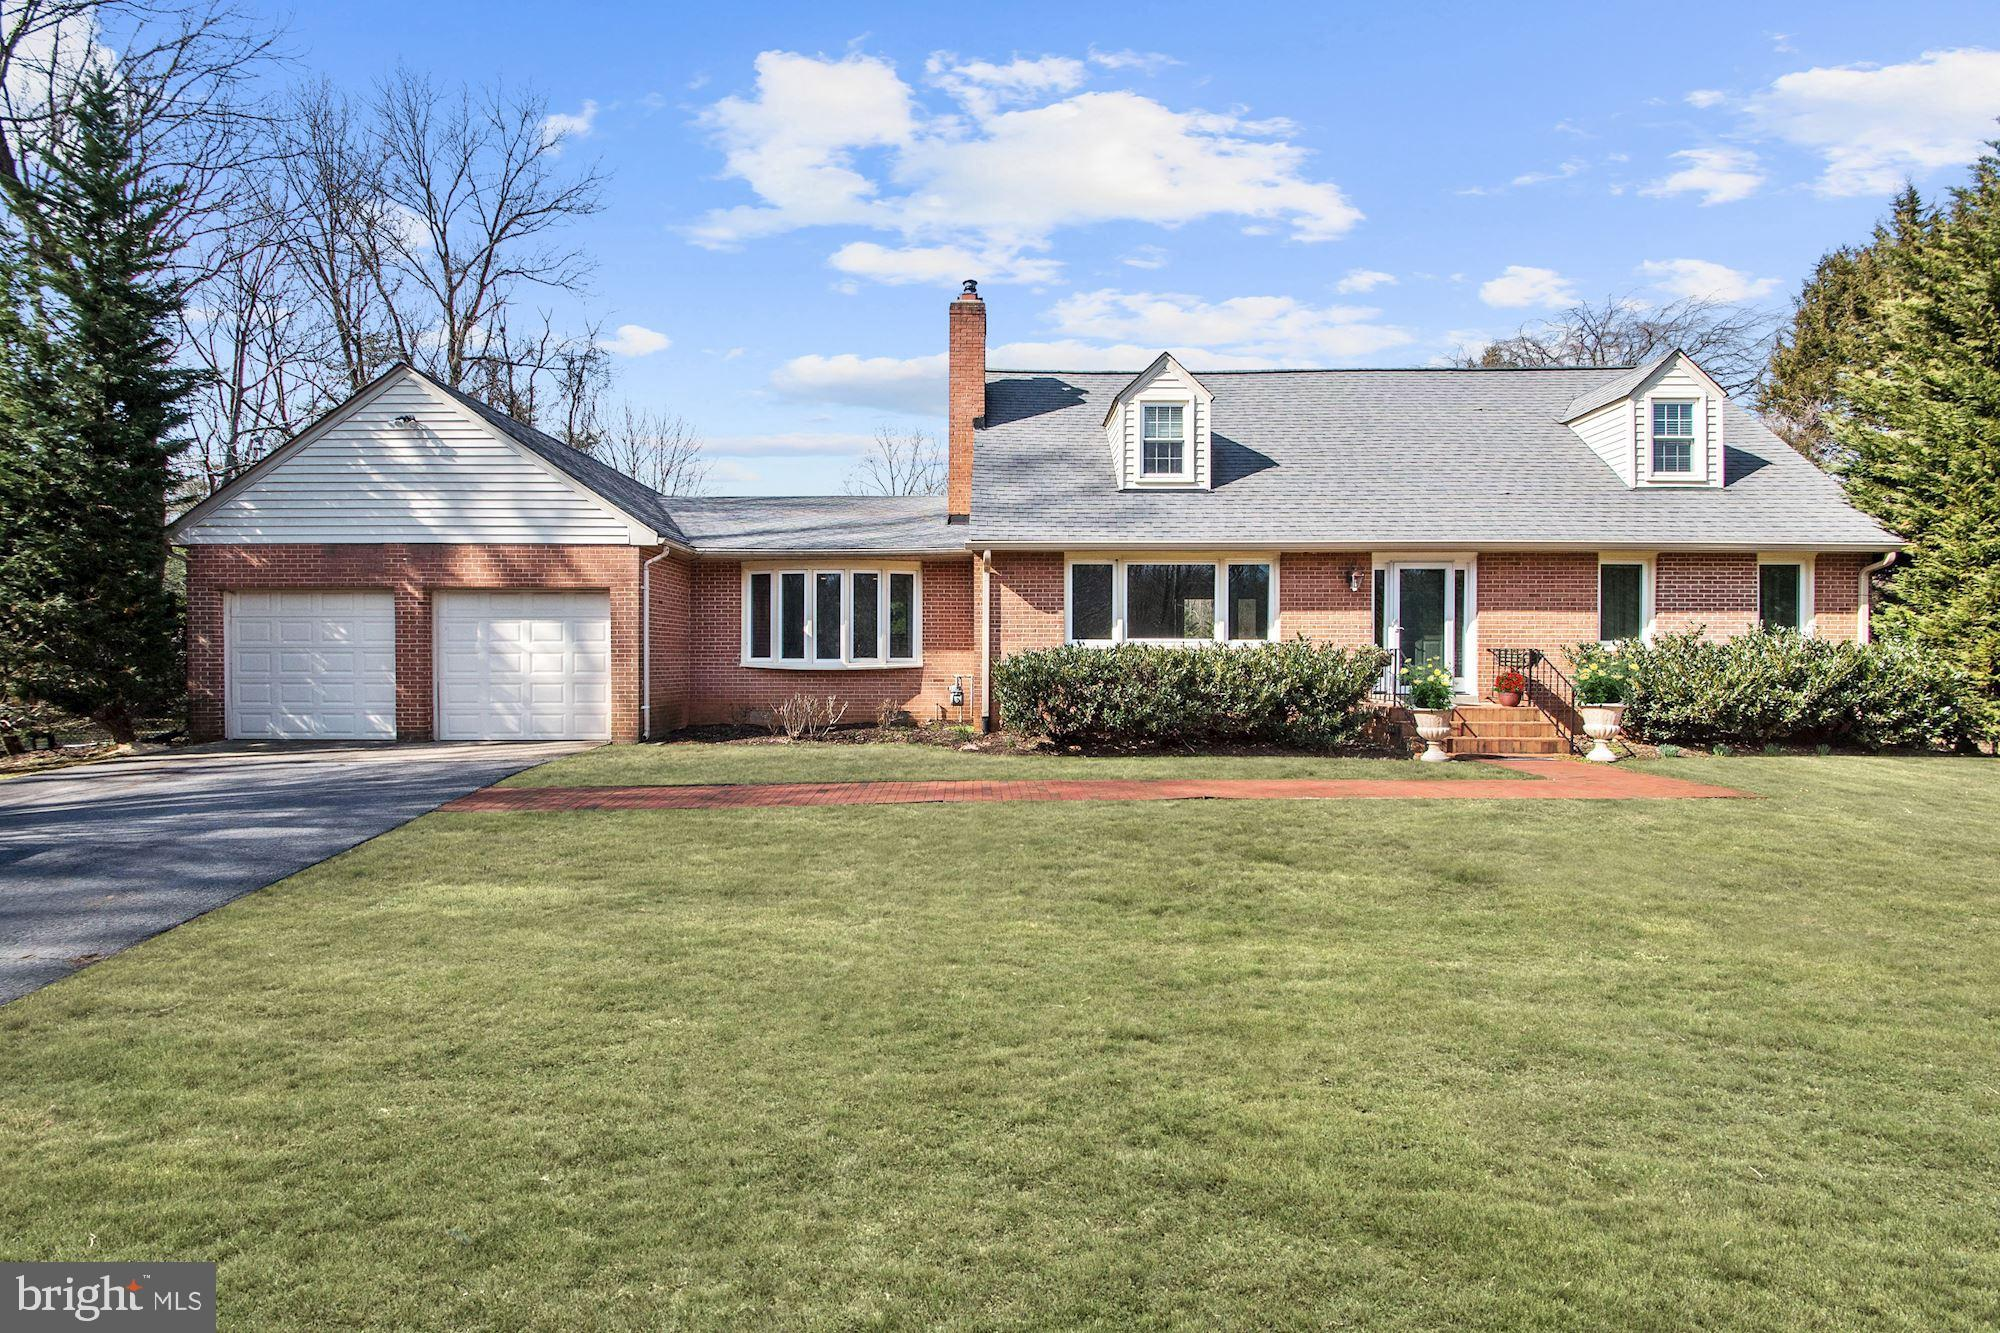 Enjoy absolute luxury and peaceful living in this remodeled residence.  This elegant home was remodeled in 2015-16 by Hopkins & Porter and sits proudly on a picturesque 1.13-acre lot.  You will love the private and peaceful lifestyle while still being within easy reach of Bethesda and Washington DC.   A spacious, light-filled open-plan layout ensures a bright and contemporary feel to the home.  Wood floors flow underfoot and large windows perfectly frame the gorgeous surrounds. The dining and living zone has a stunning fireplace while the spectacular kitchen is also open to an eating area.  Showcasing upgraded counter tops, high-end appliances, an island and striking Shaker-style cabinets, this kitchen has been designed to impress.  Relax with guests in the expansive outdoor entertaining areas,  screened porch or around the fire pit and admire the incredible landscaping and mature trees that envelop the property.  There are three large bedrooms and 2.5 baths including the main-floor master suite with an opulent master bath.  Extra show-stopping features include recessed lighting, walk-in closets, window treatments, ceiling fans and a two-car garage.  Currently in the Wootton  School district.